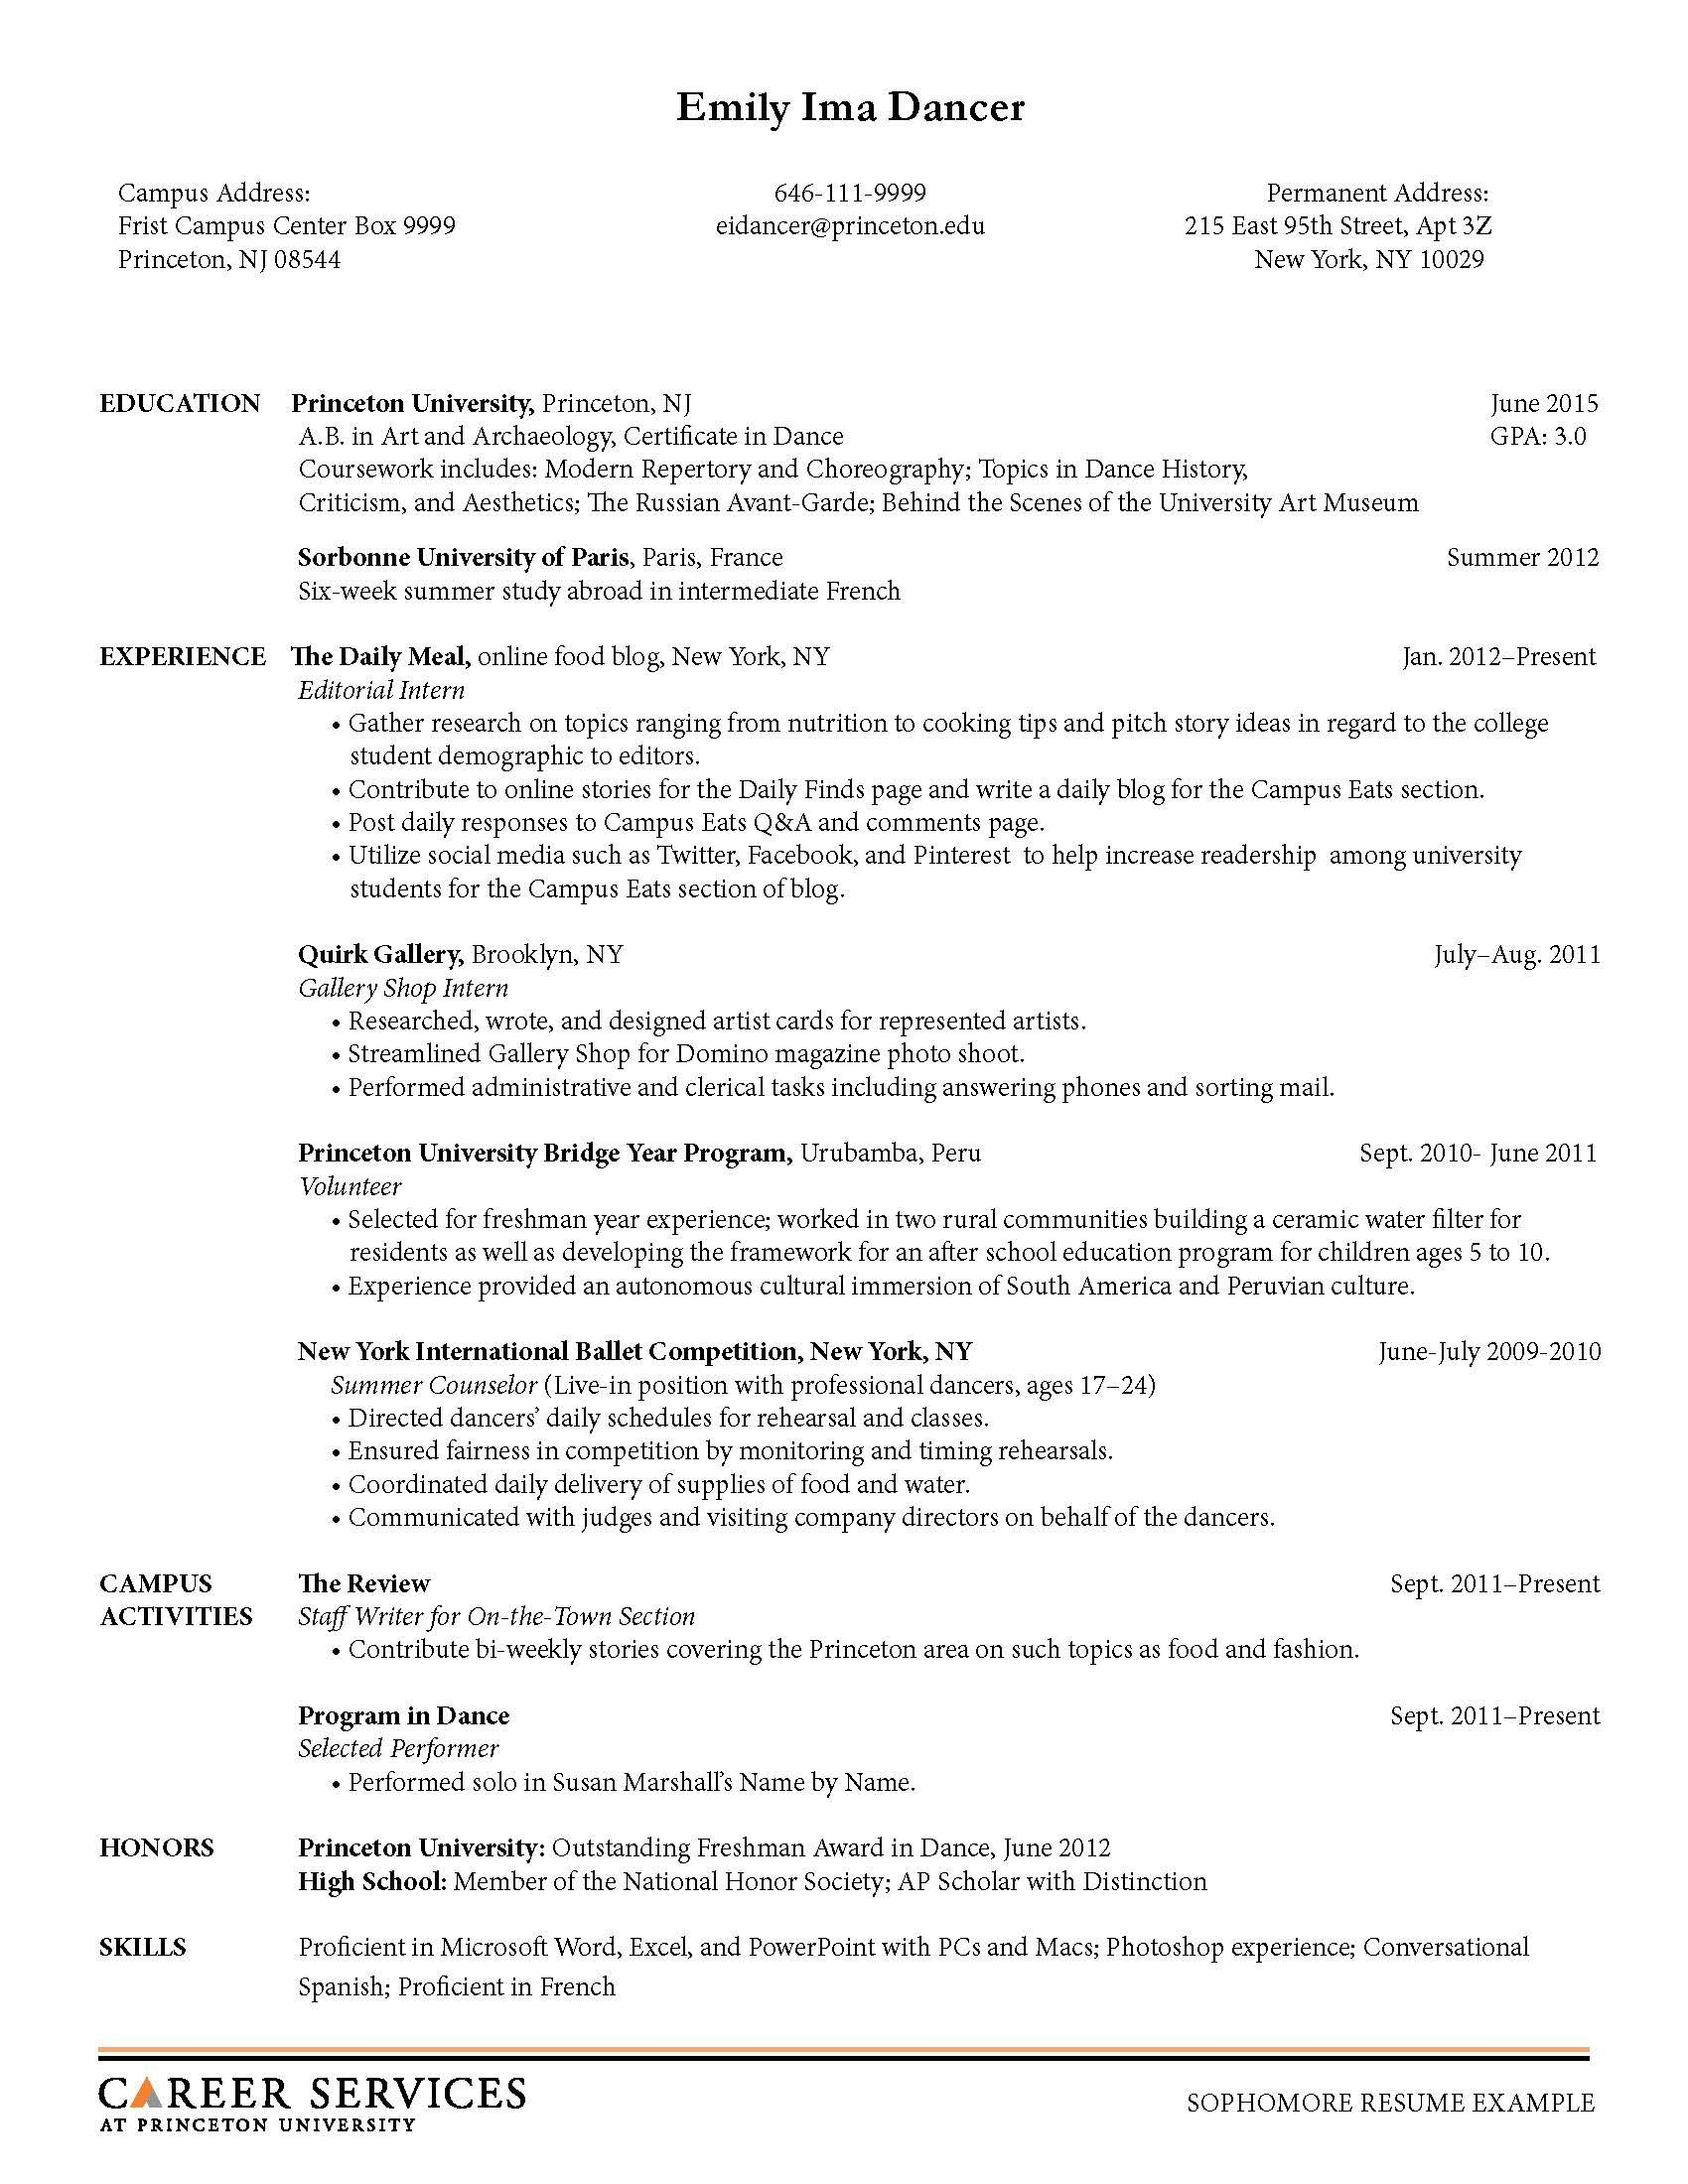 Psychology Graduate School Resume   Http://www.resumecareer.info/psychology